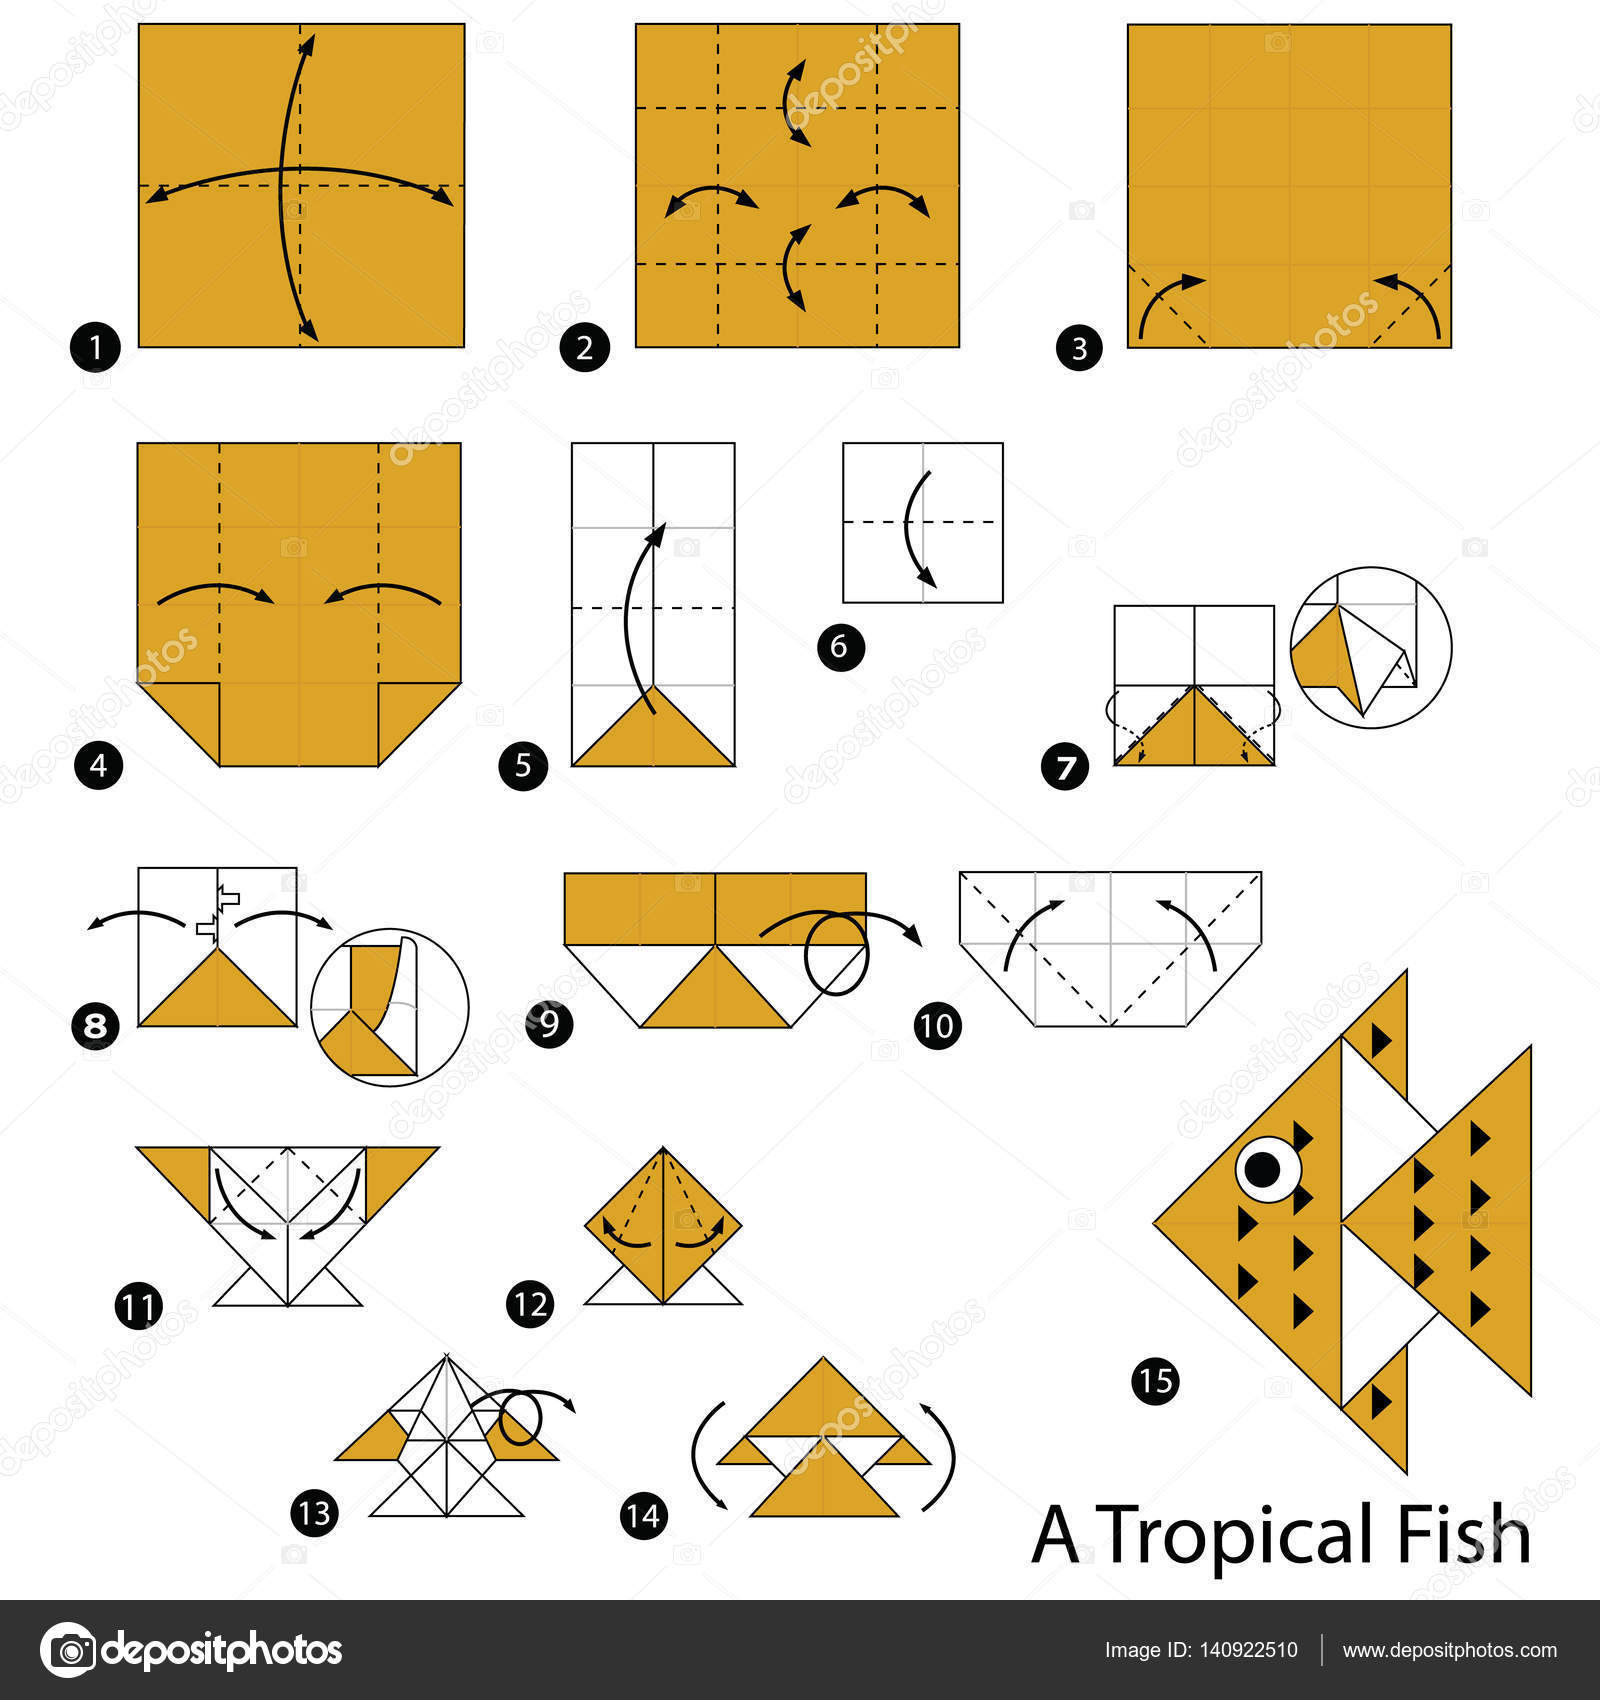 Step by step instructions how to make origami a tropical fish animal toy cartoon cute paper steps origami vector by pokky334hotmail jeuxipadfo Images